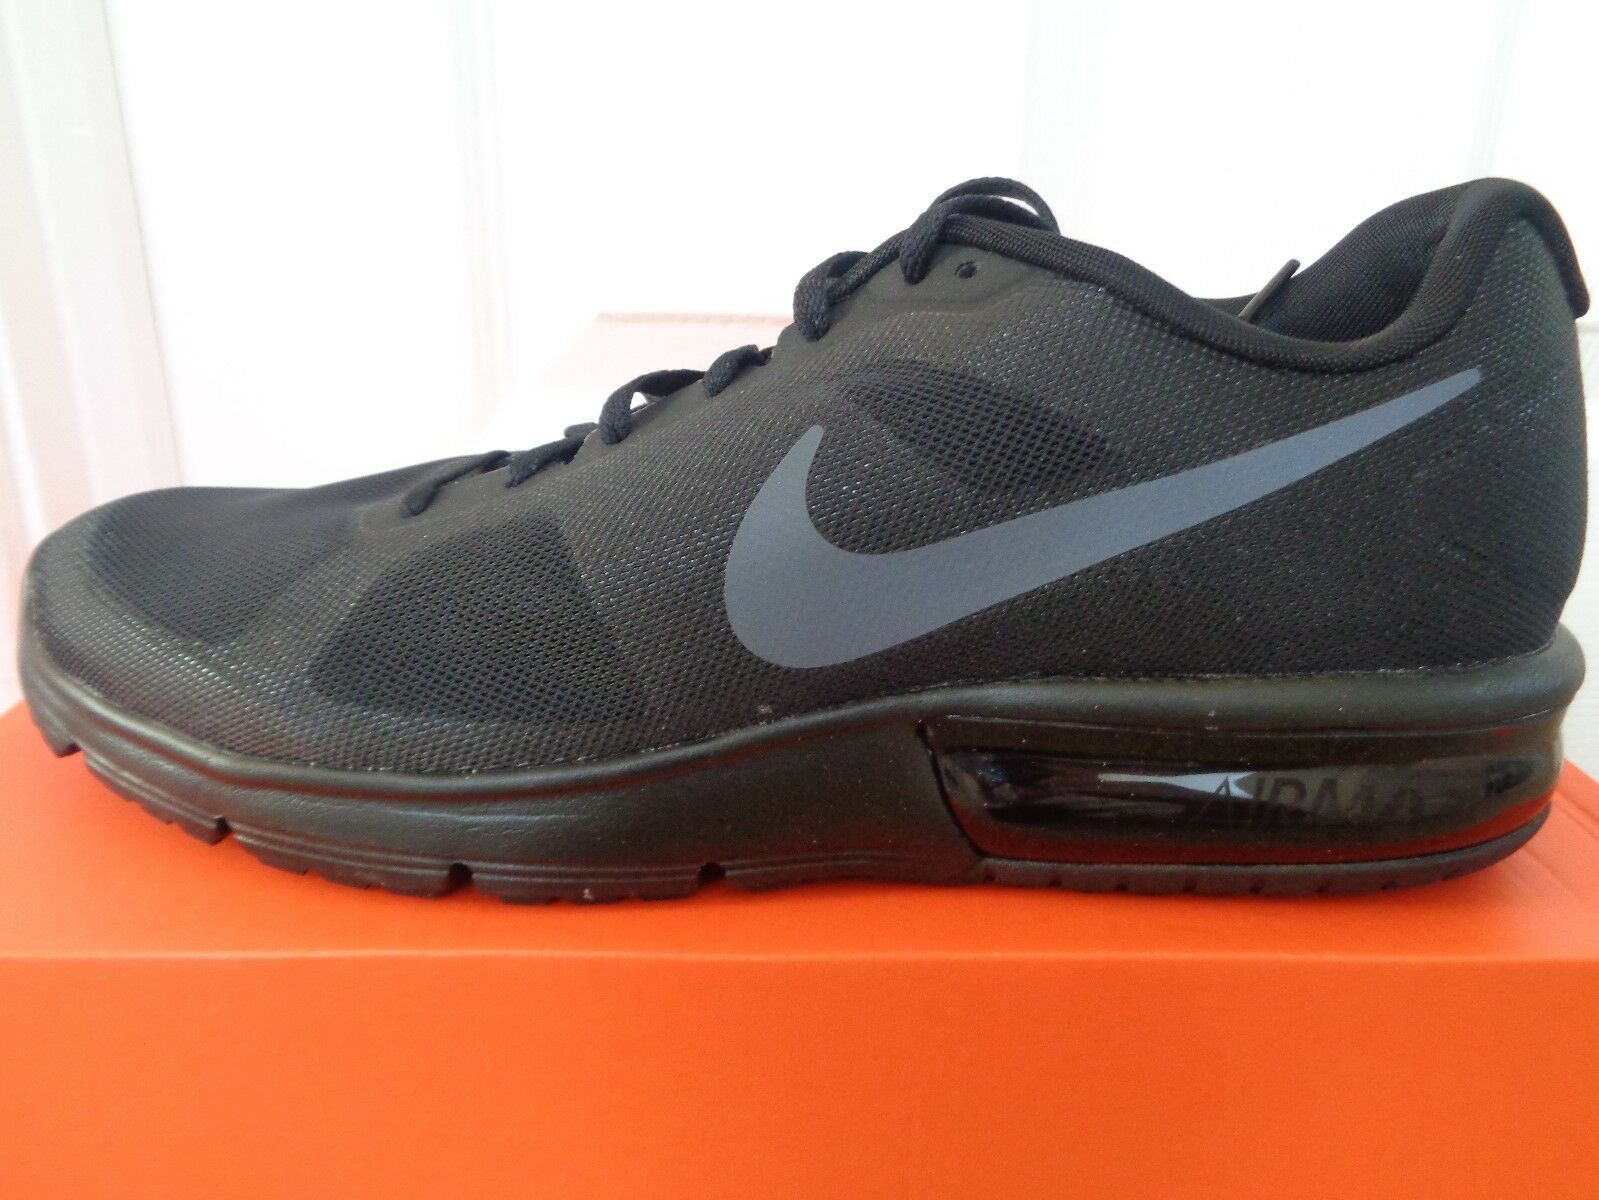 b0143f55a5 Nike Air Max Sequent trainers shoes 020 uk 9 eu 44 10 NEW IN BOX us 719912  nnbtui2118-Men's Trainers